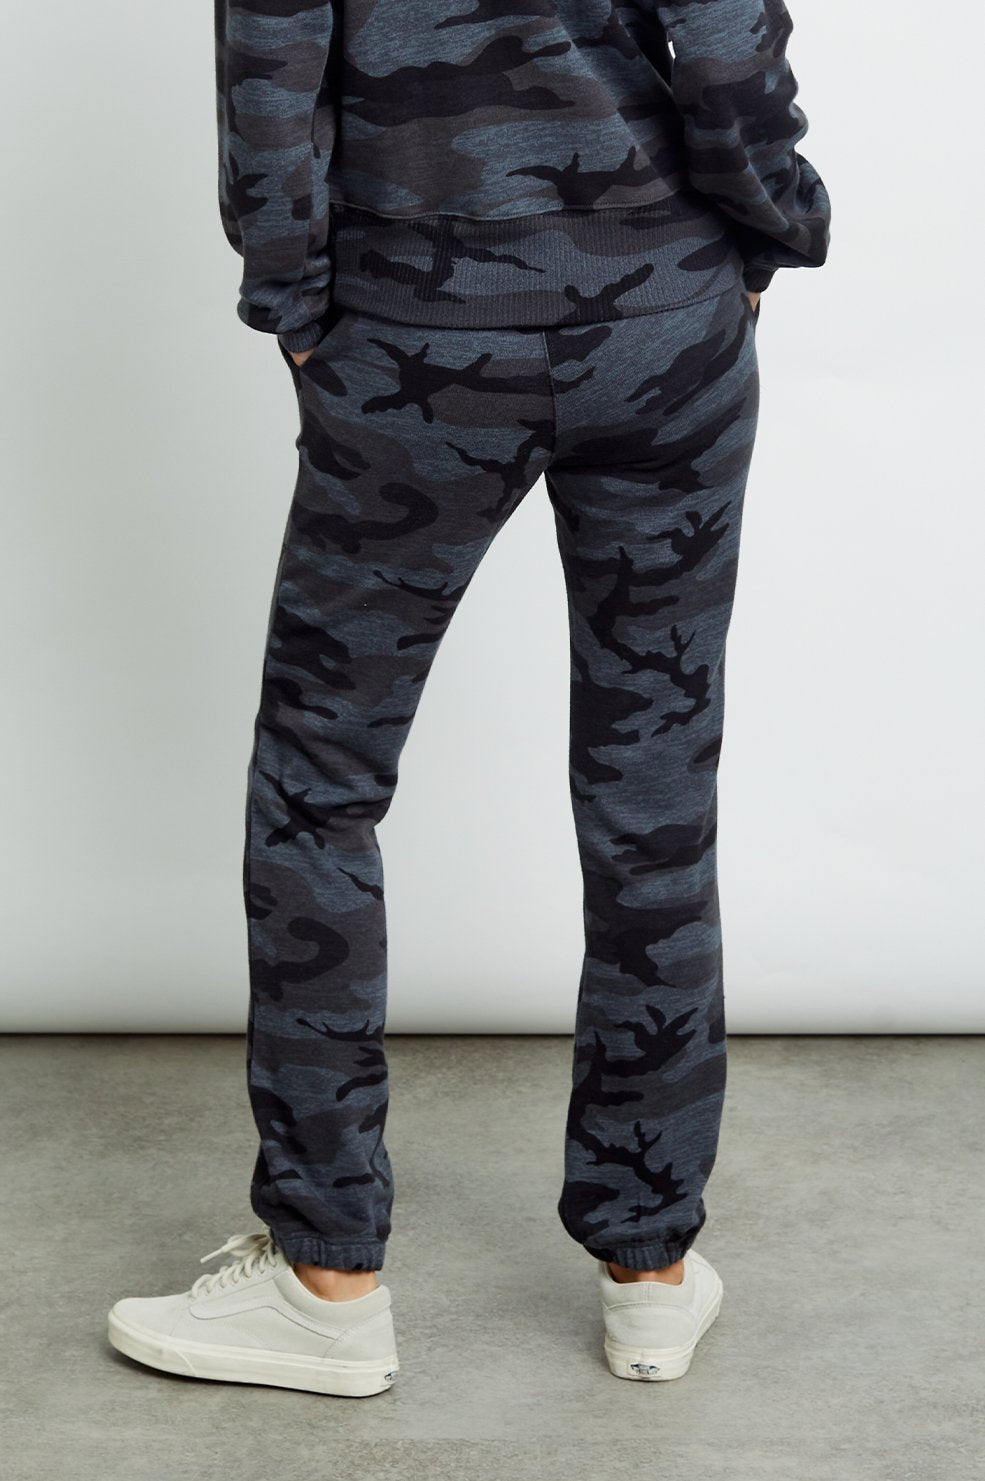 Kingston Sweats in Iron Camo